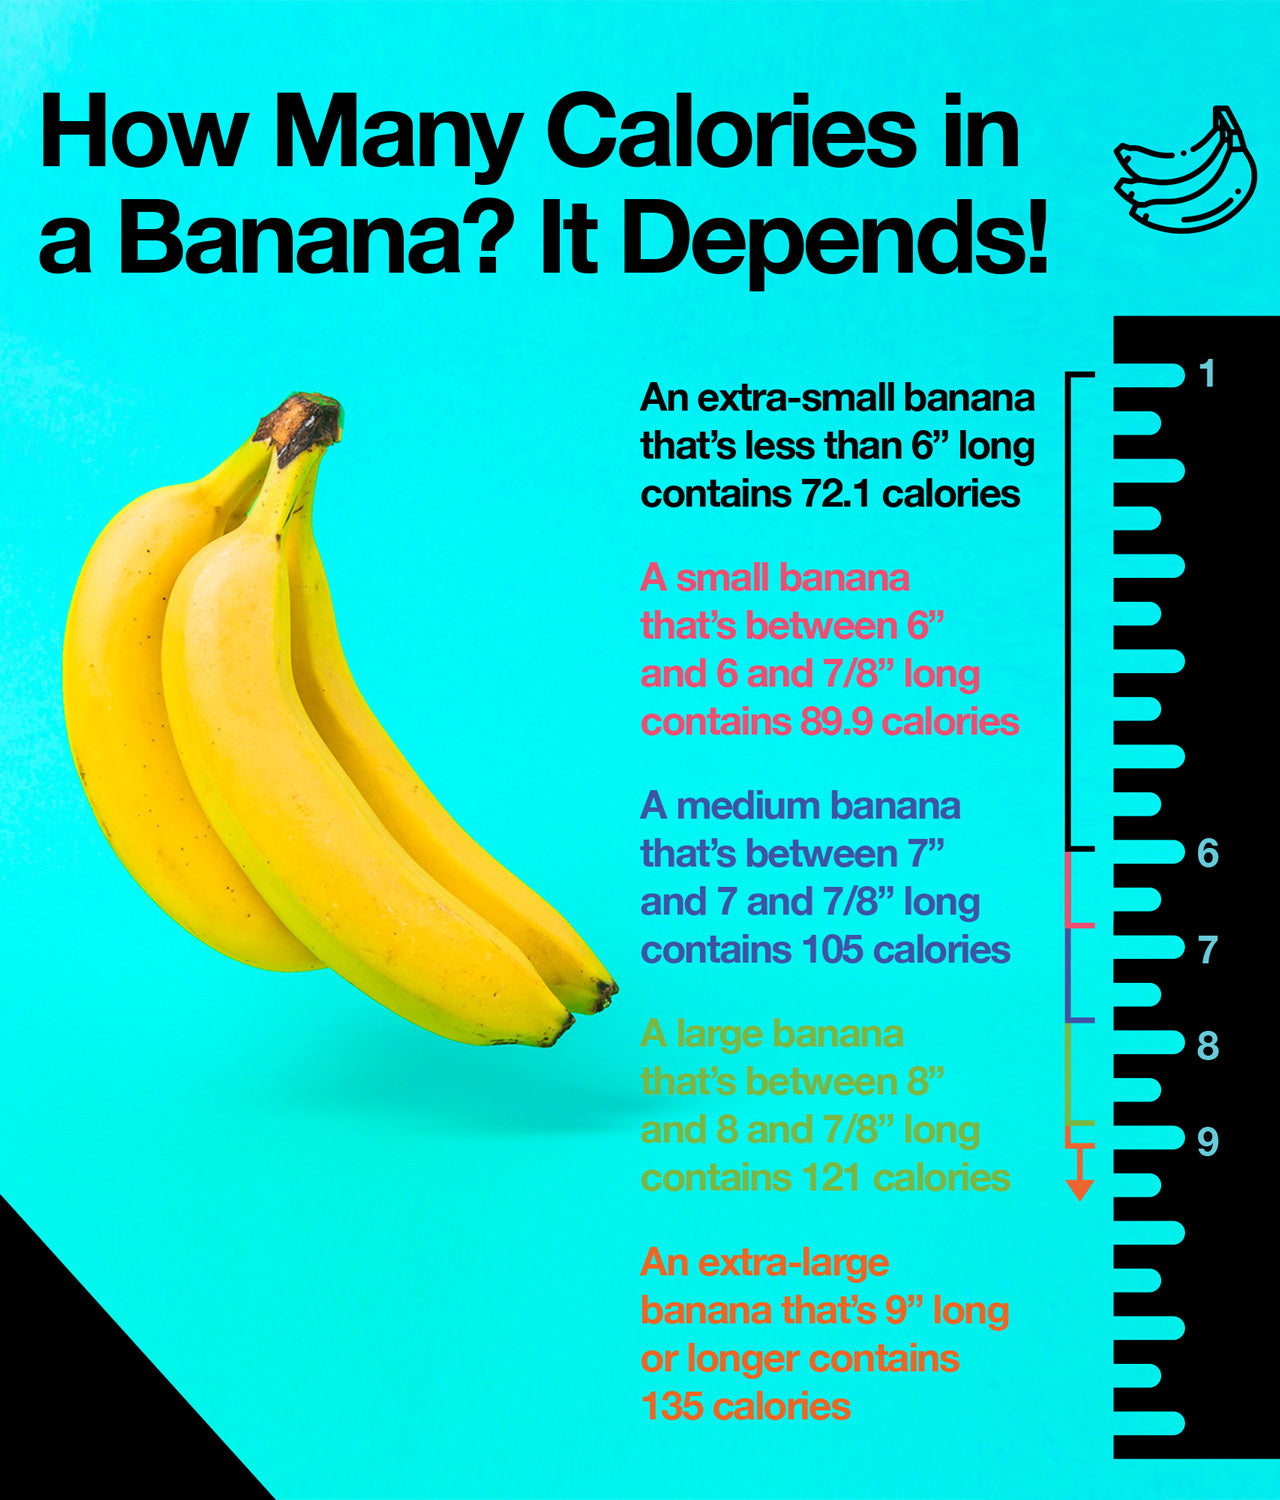 How Many Calories in a Banana? It Depends!